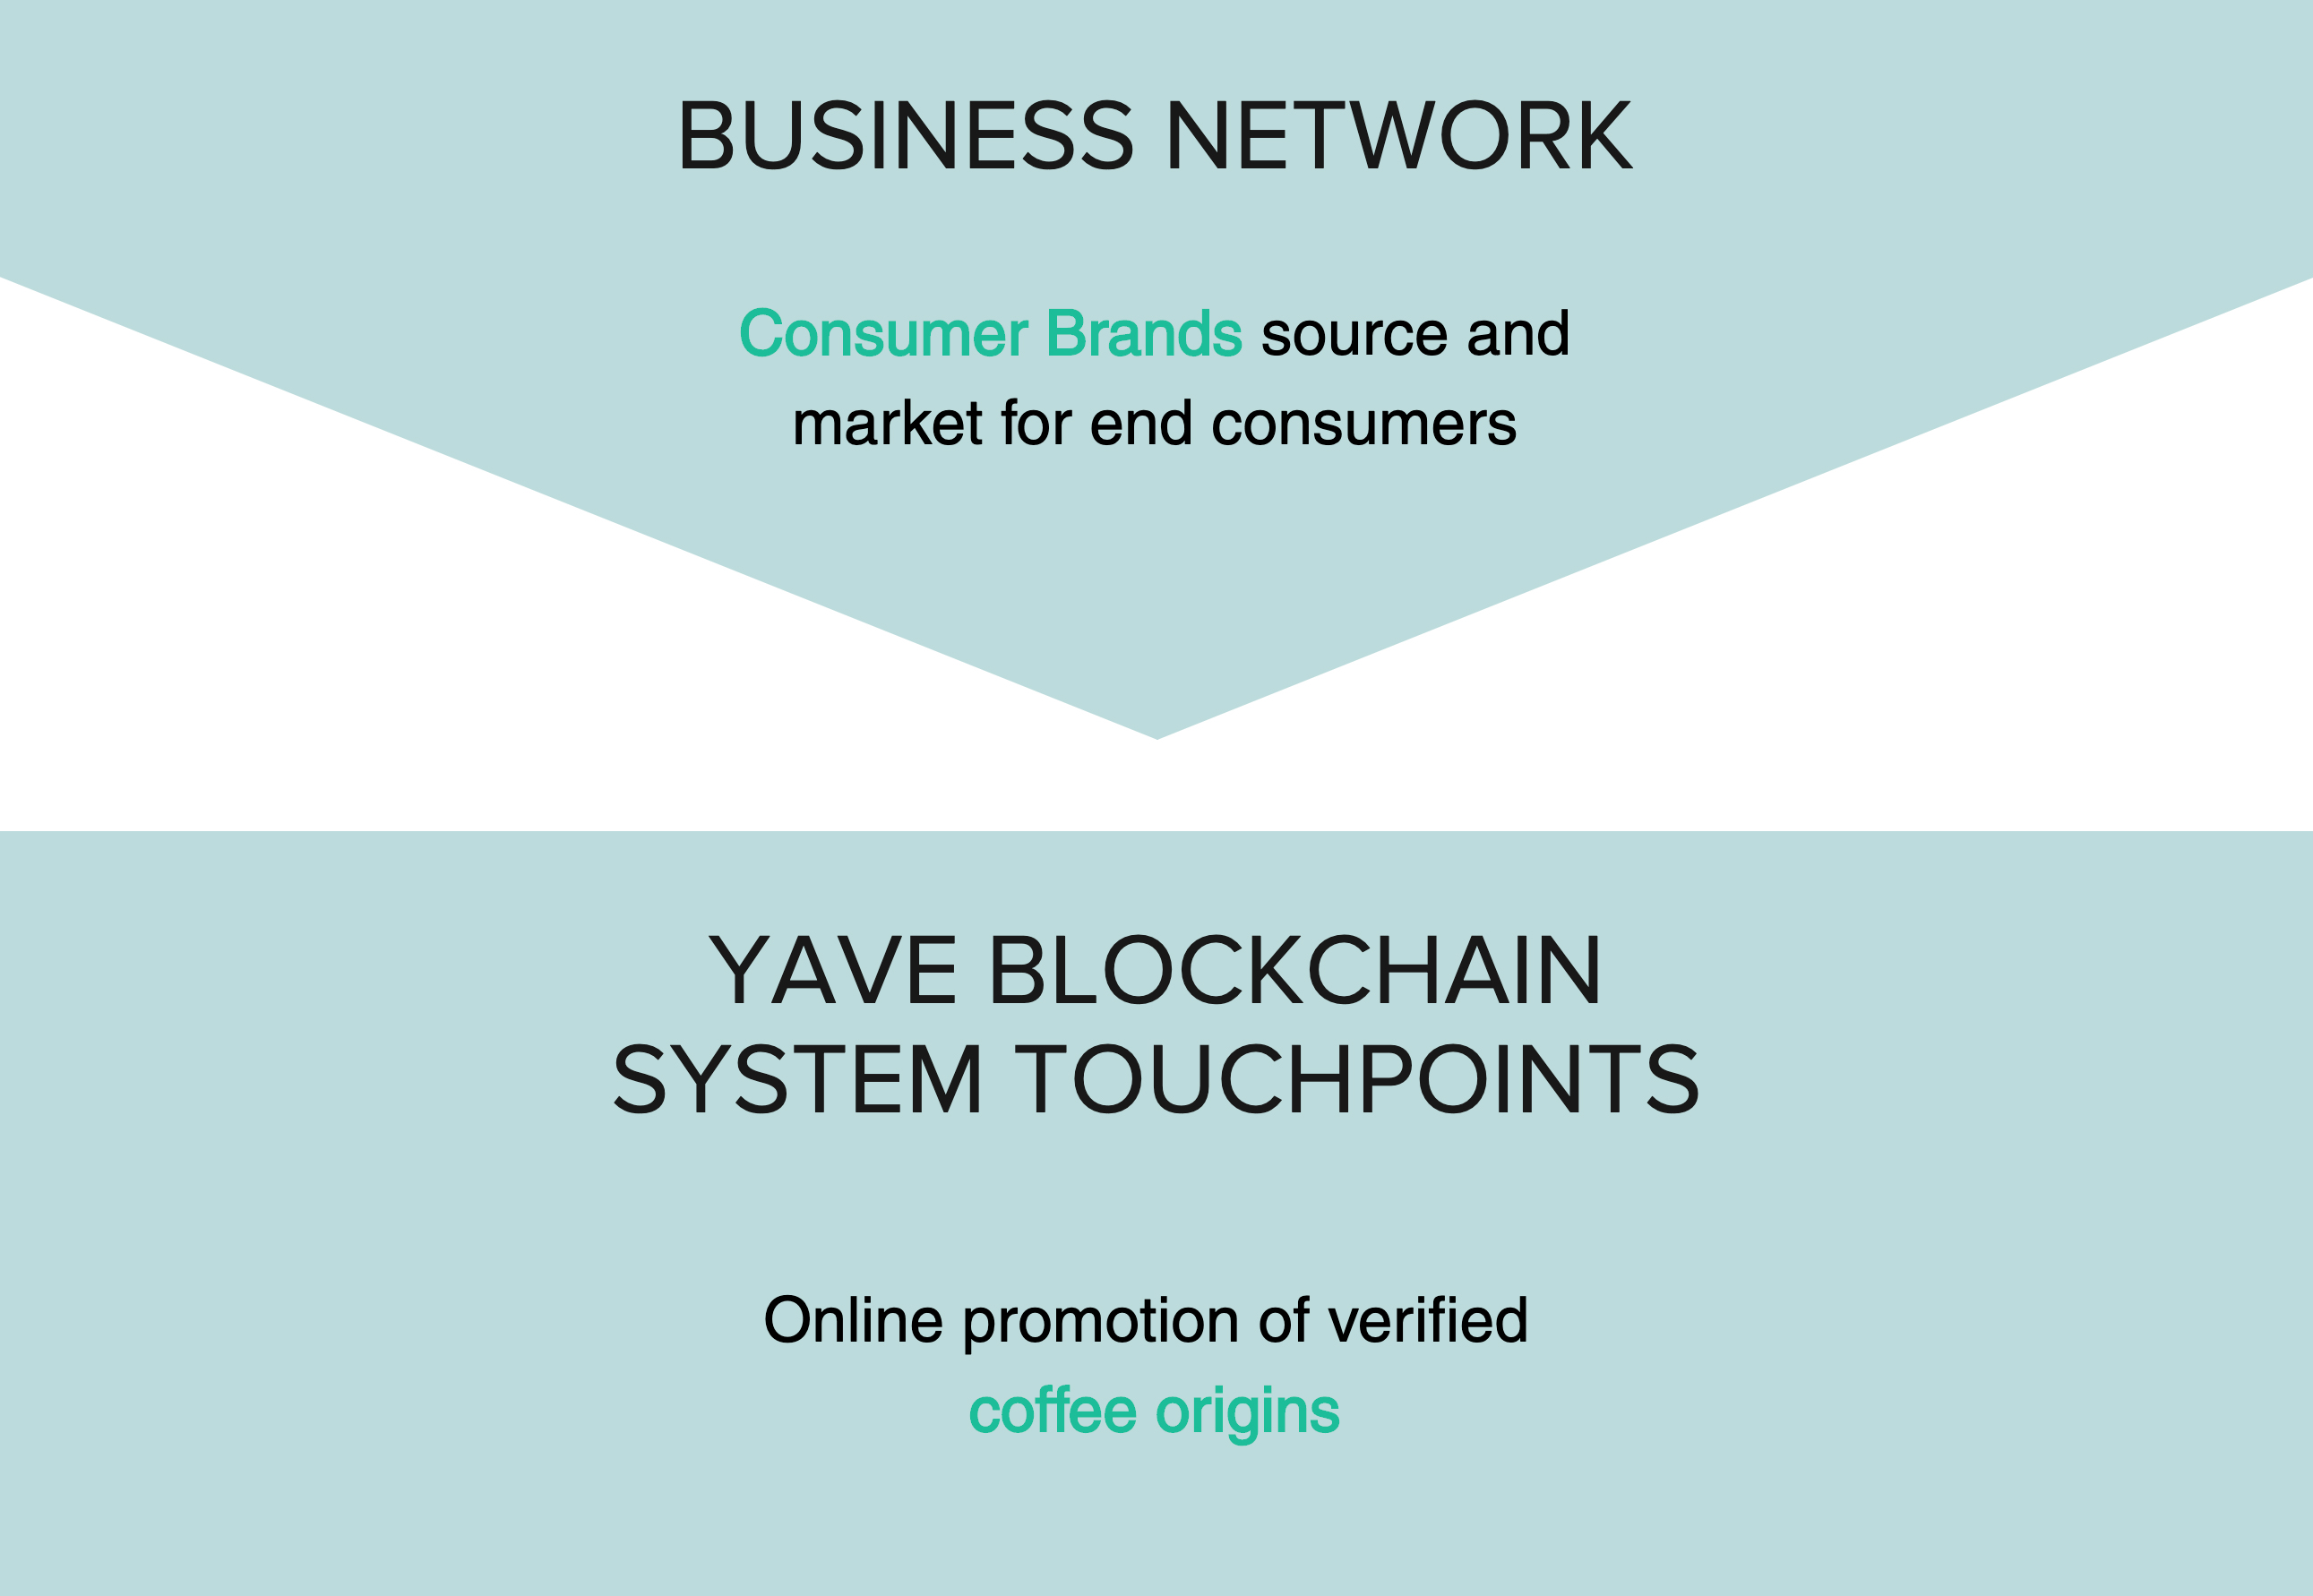 Business Network: Producers bag and weigh harvest > Yave Blockchain System Touchpoints: Online promotion of verified coffee origins